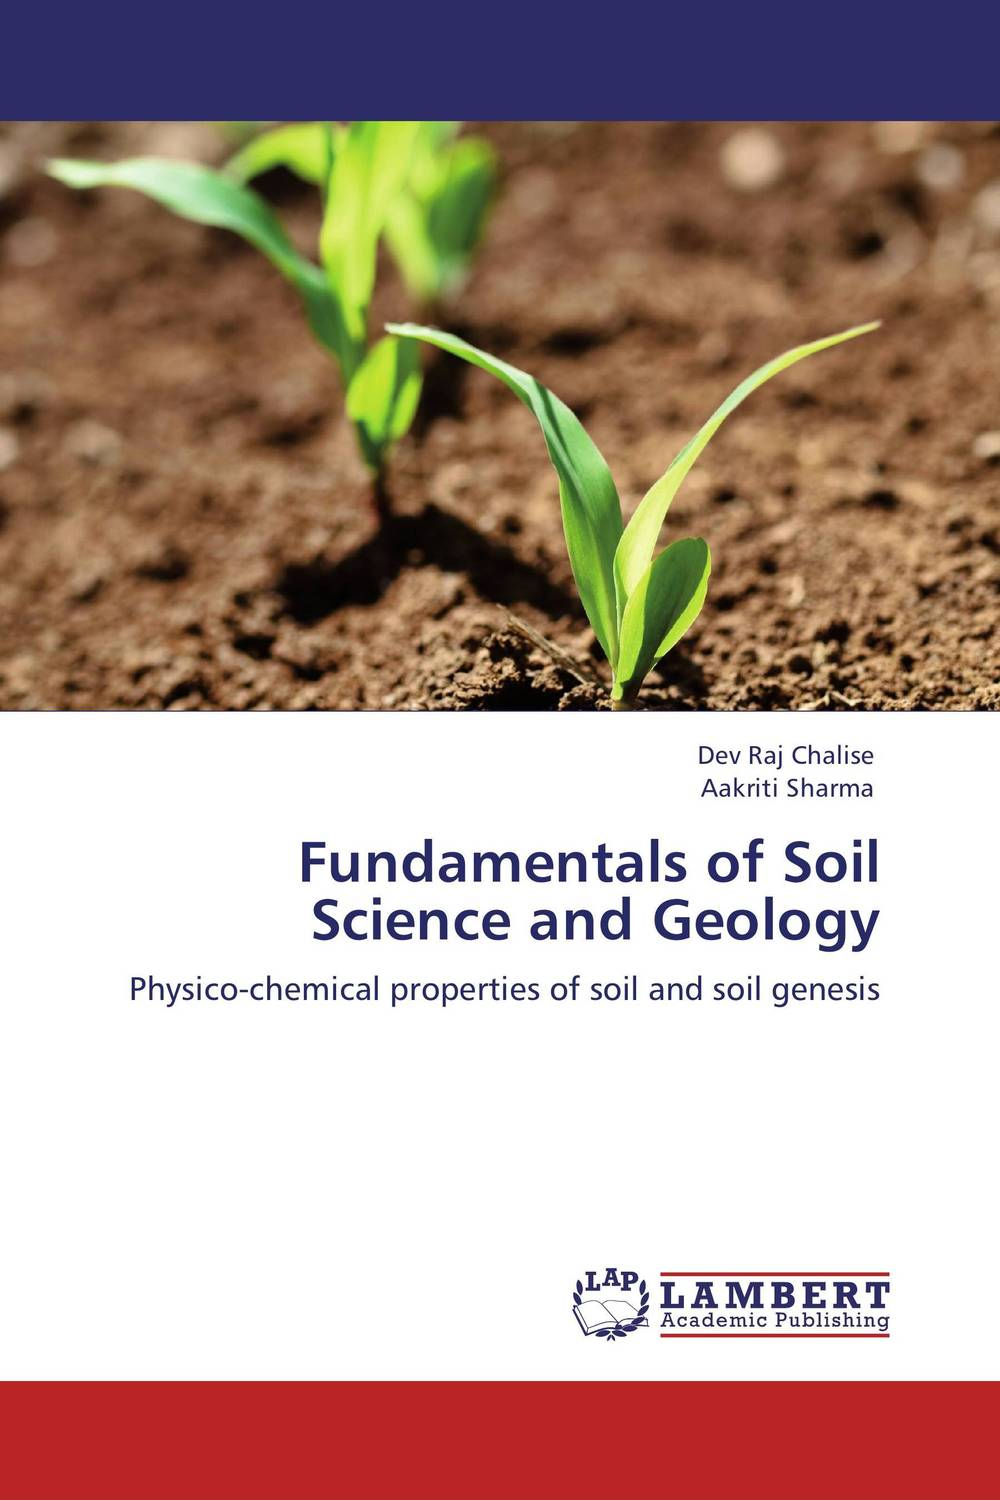 Fundamentals of Soil Science and Geology david atwood a the rare earth elements fundamentals and applications